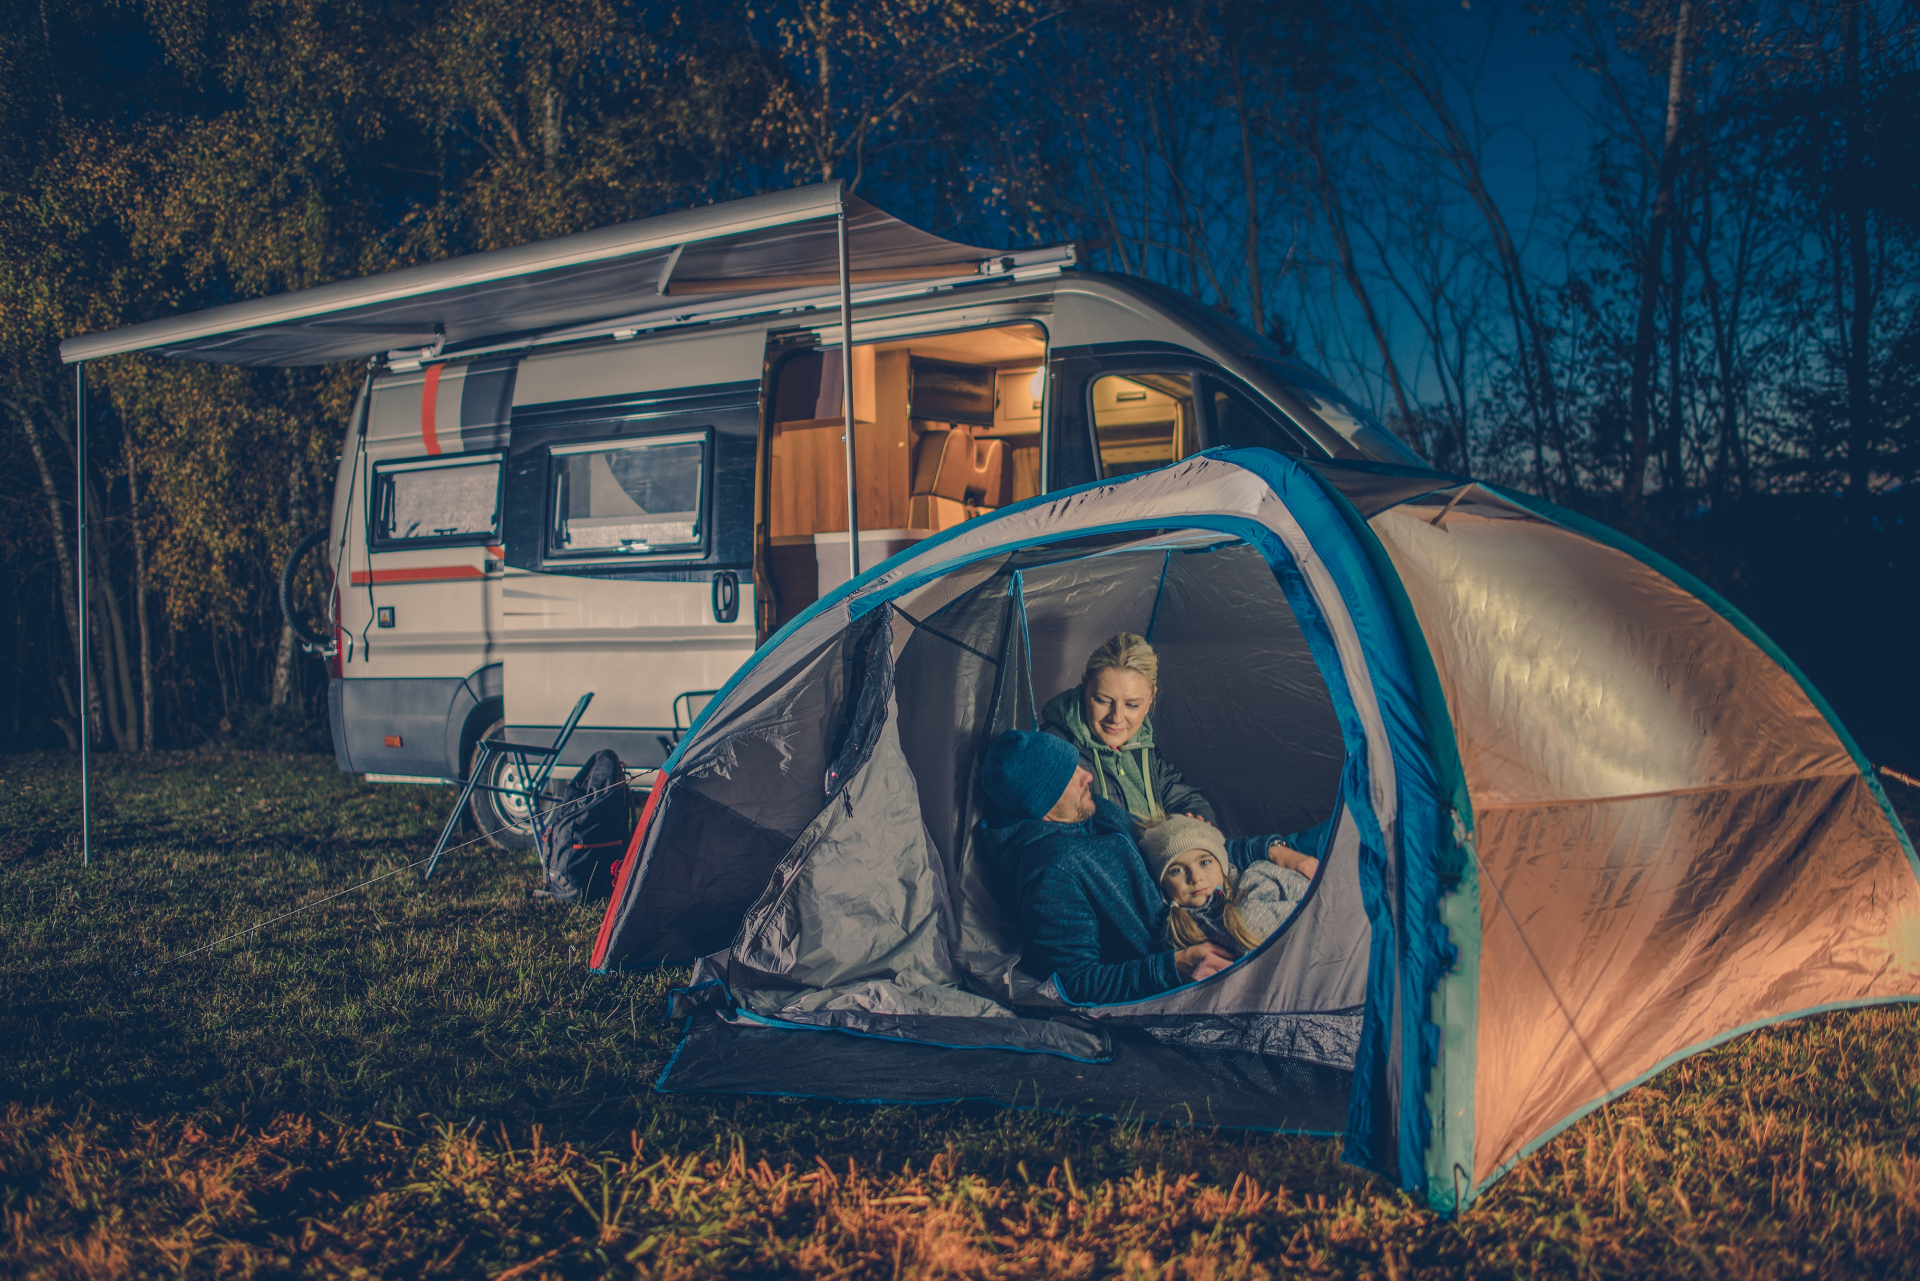 How to Pick Out the Perfect Swag for Your Next Camping Adventure